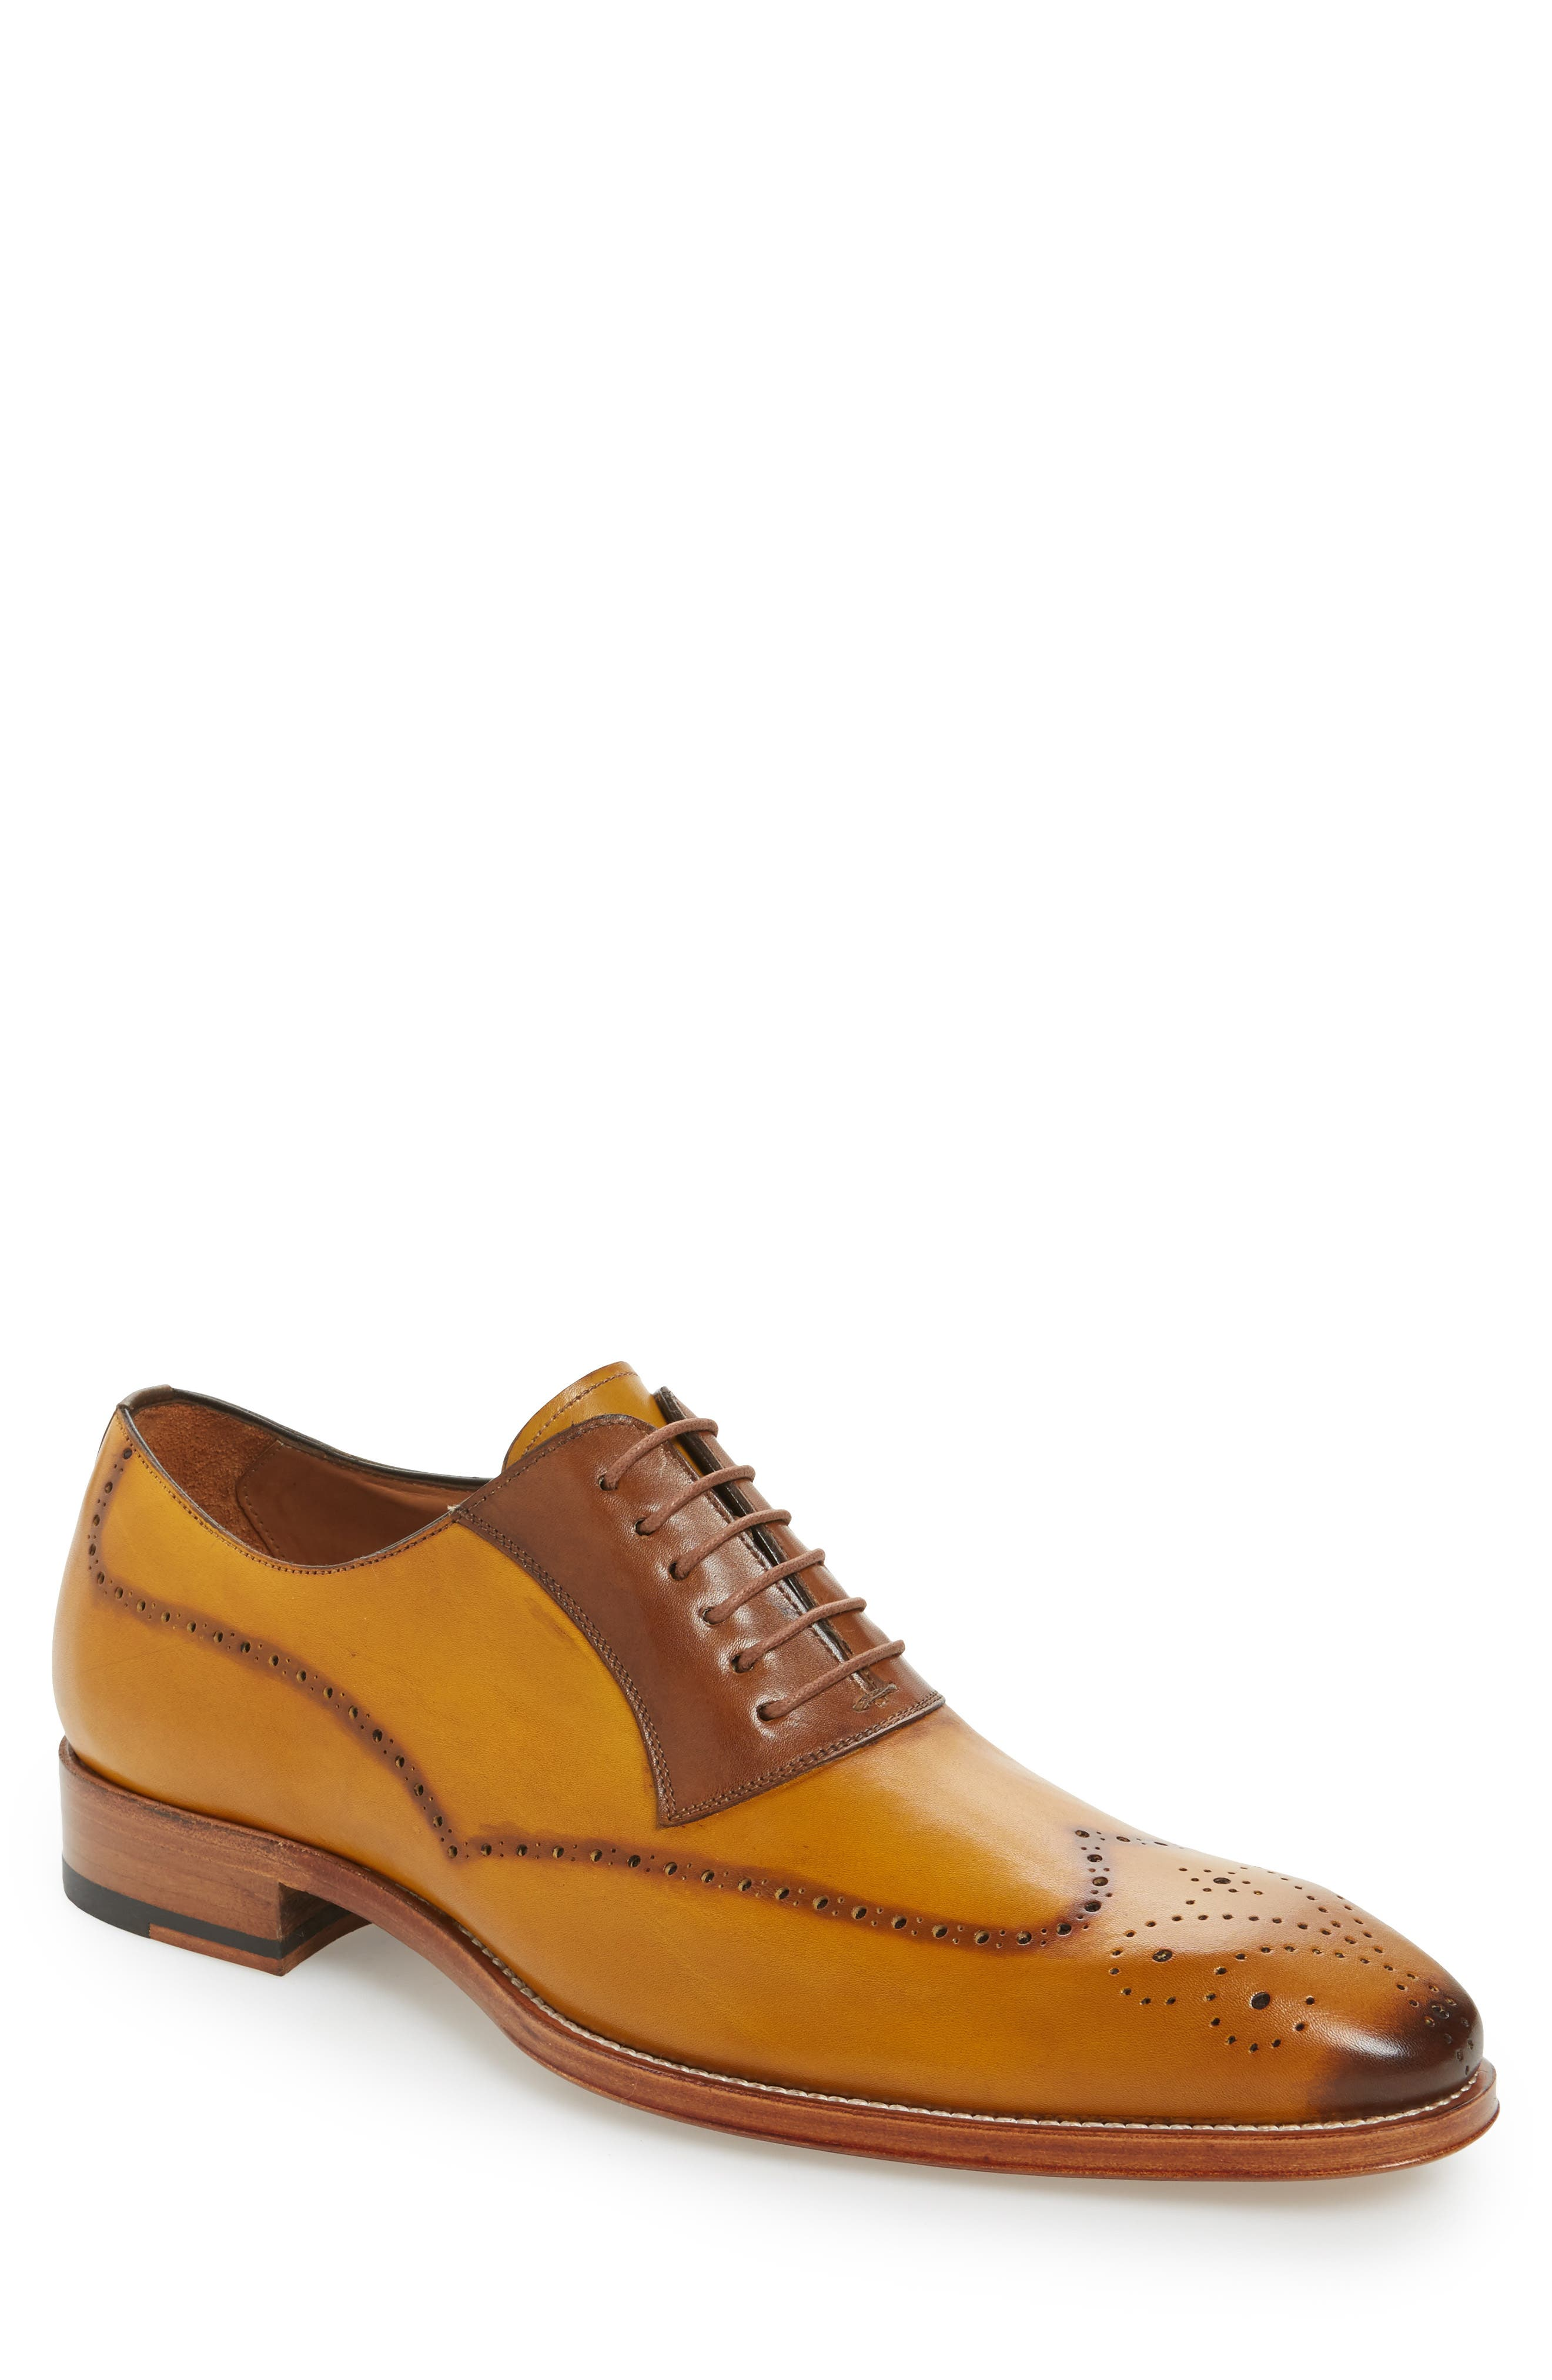 Kelvin Faux Wingtip,                             Main thumbnail 1, color,                             MUSTARD/ TAN LEATHER